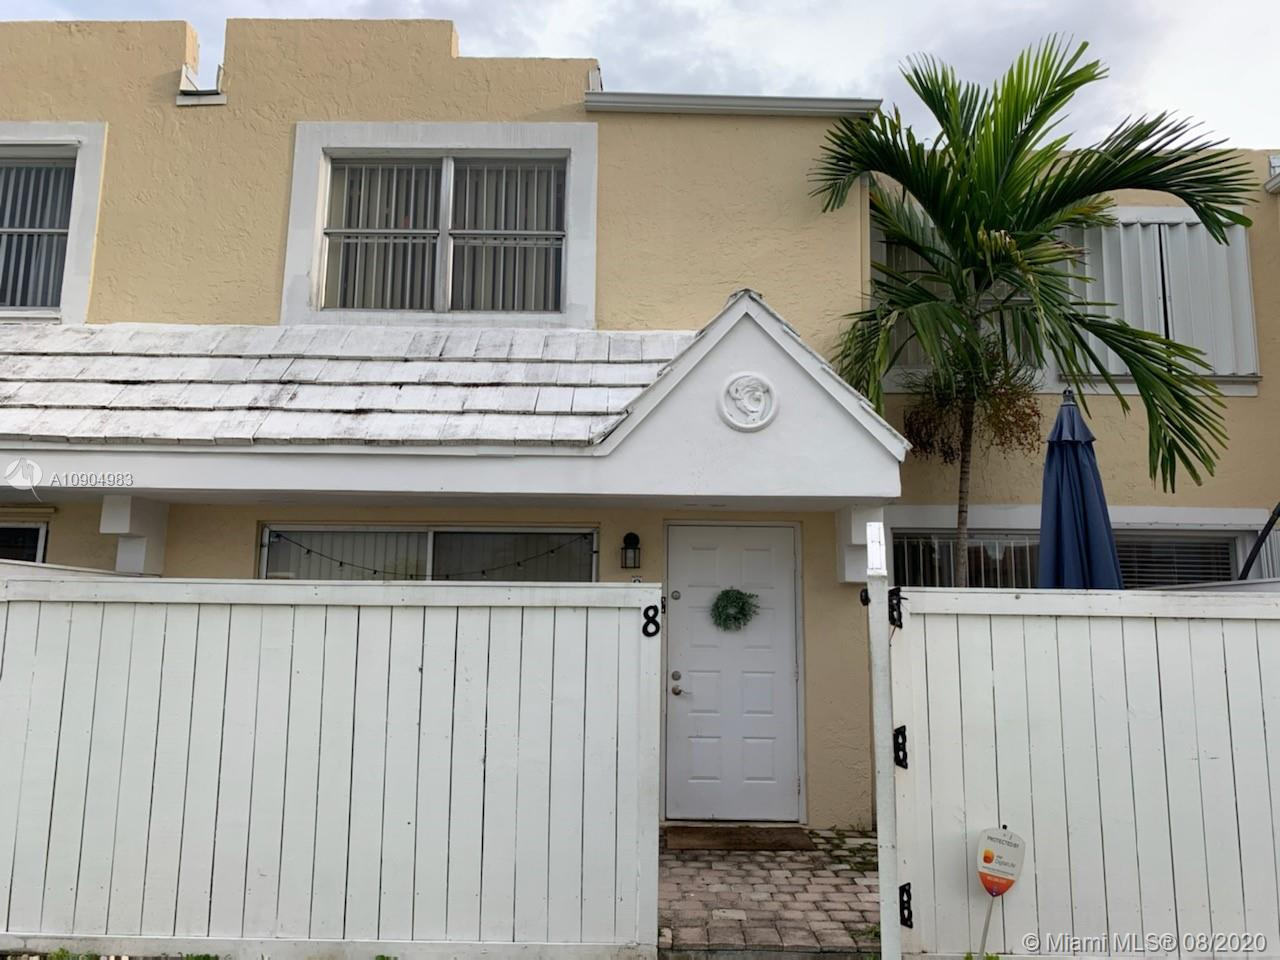 Beautiful 2 bedroom 1 and a half bath townhouse in location, location, location. Close to Coral Gables, the University of Miami, shops and restaurants. This community features 2 swimming pools and tennis courts for your enjoyment. Bring your tenants so they can see what a great place to live this is.